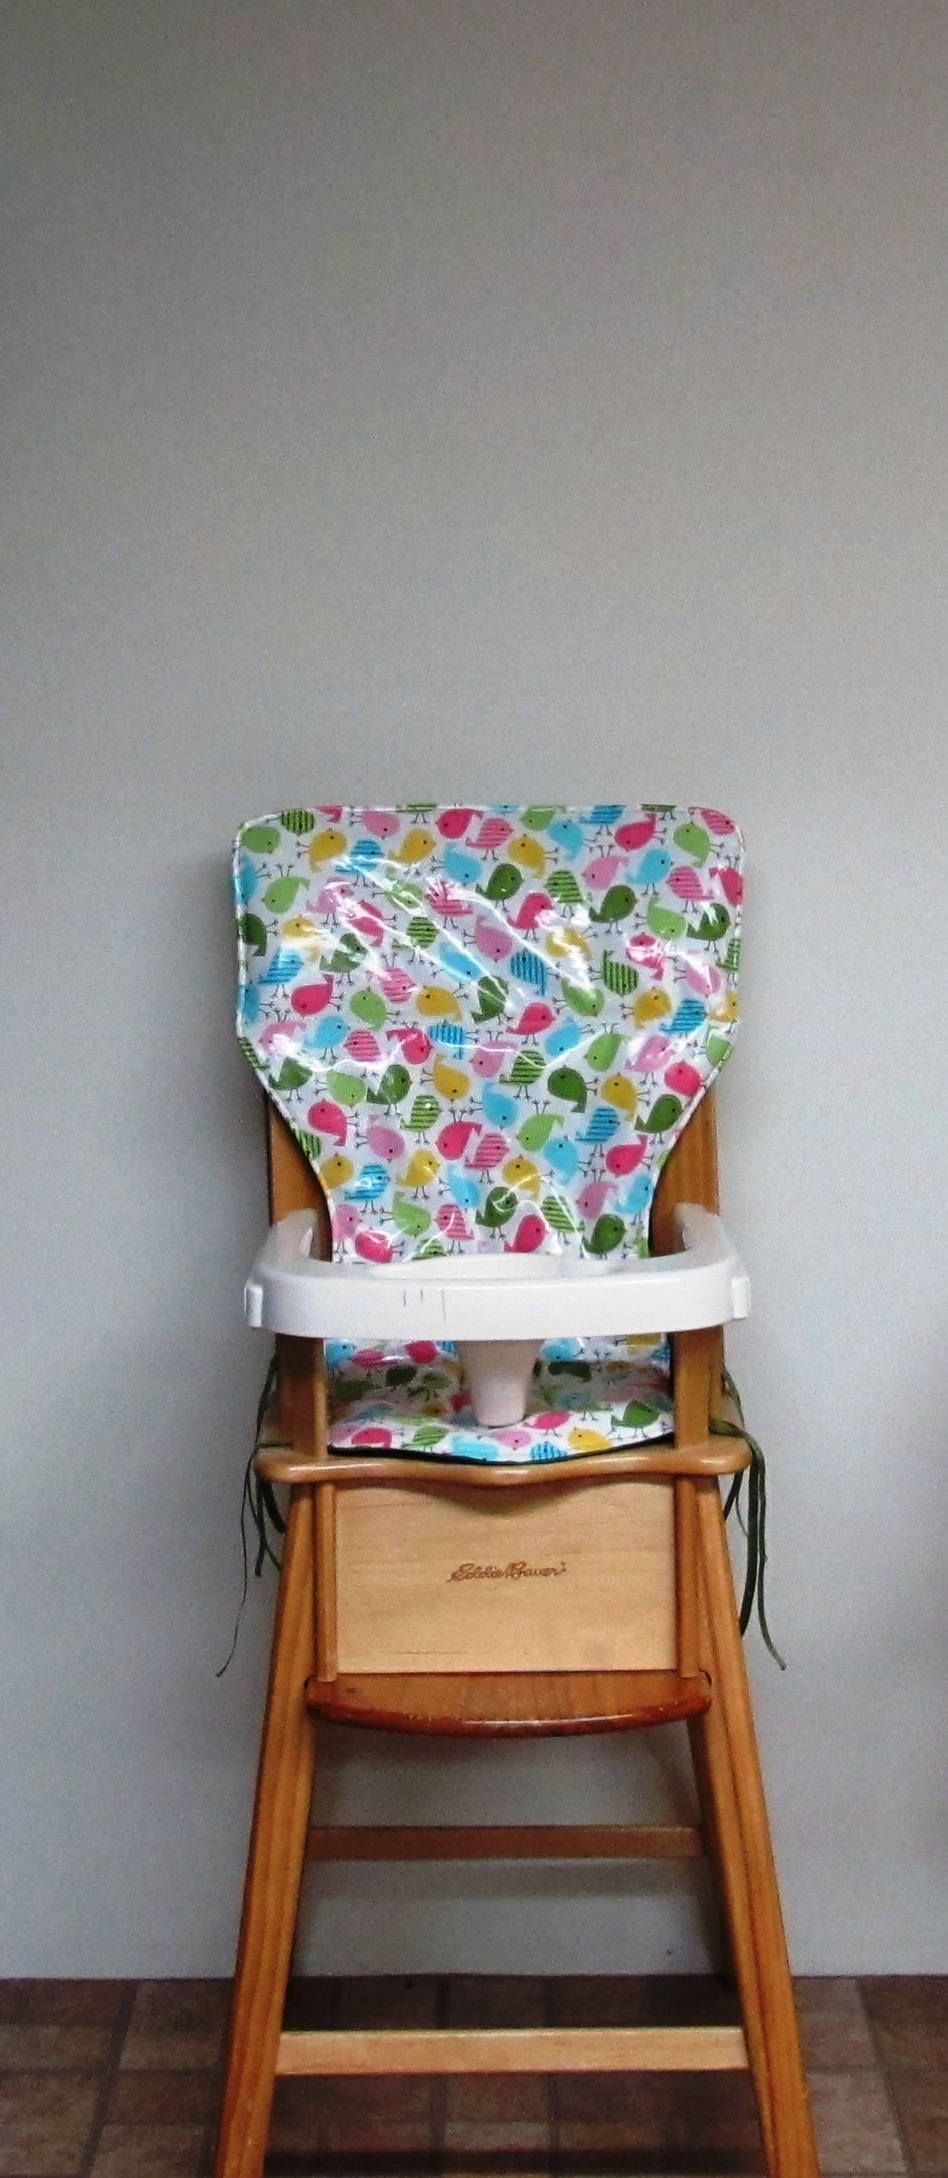 baby chair cover LAMINATED COTTON wood high chair pad baby